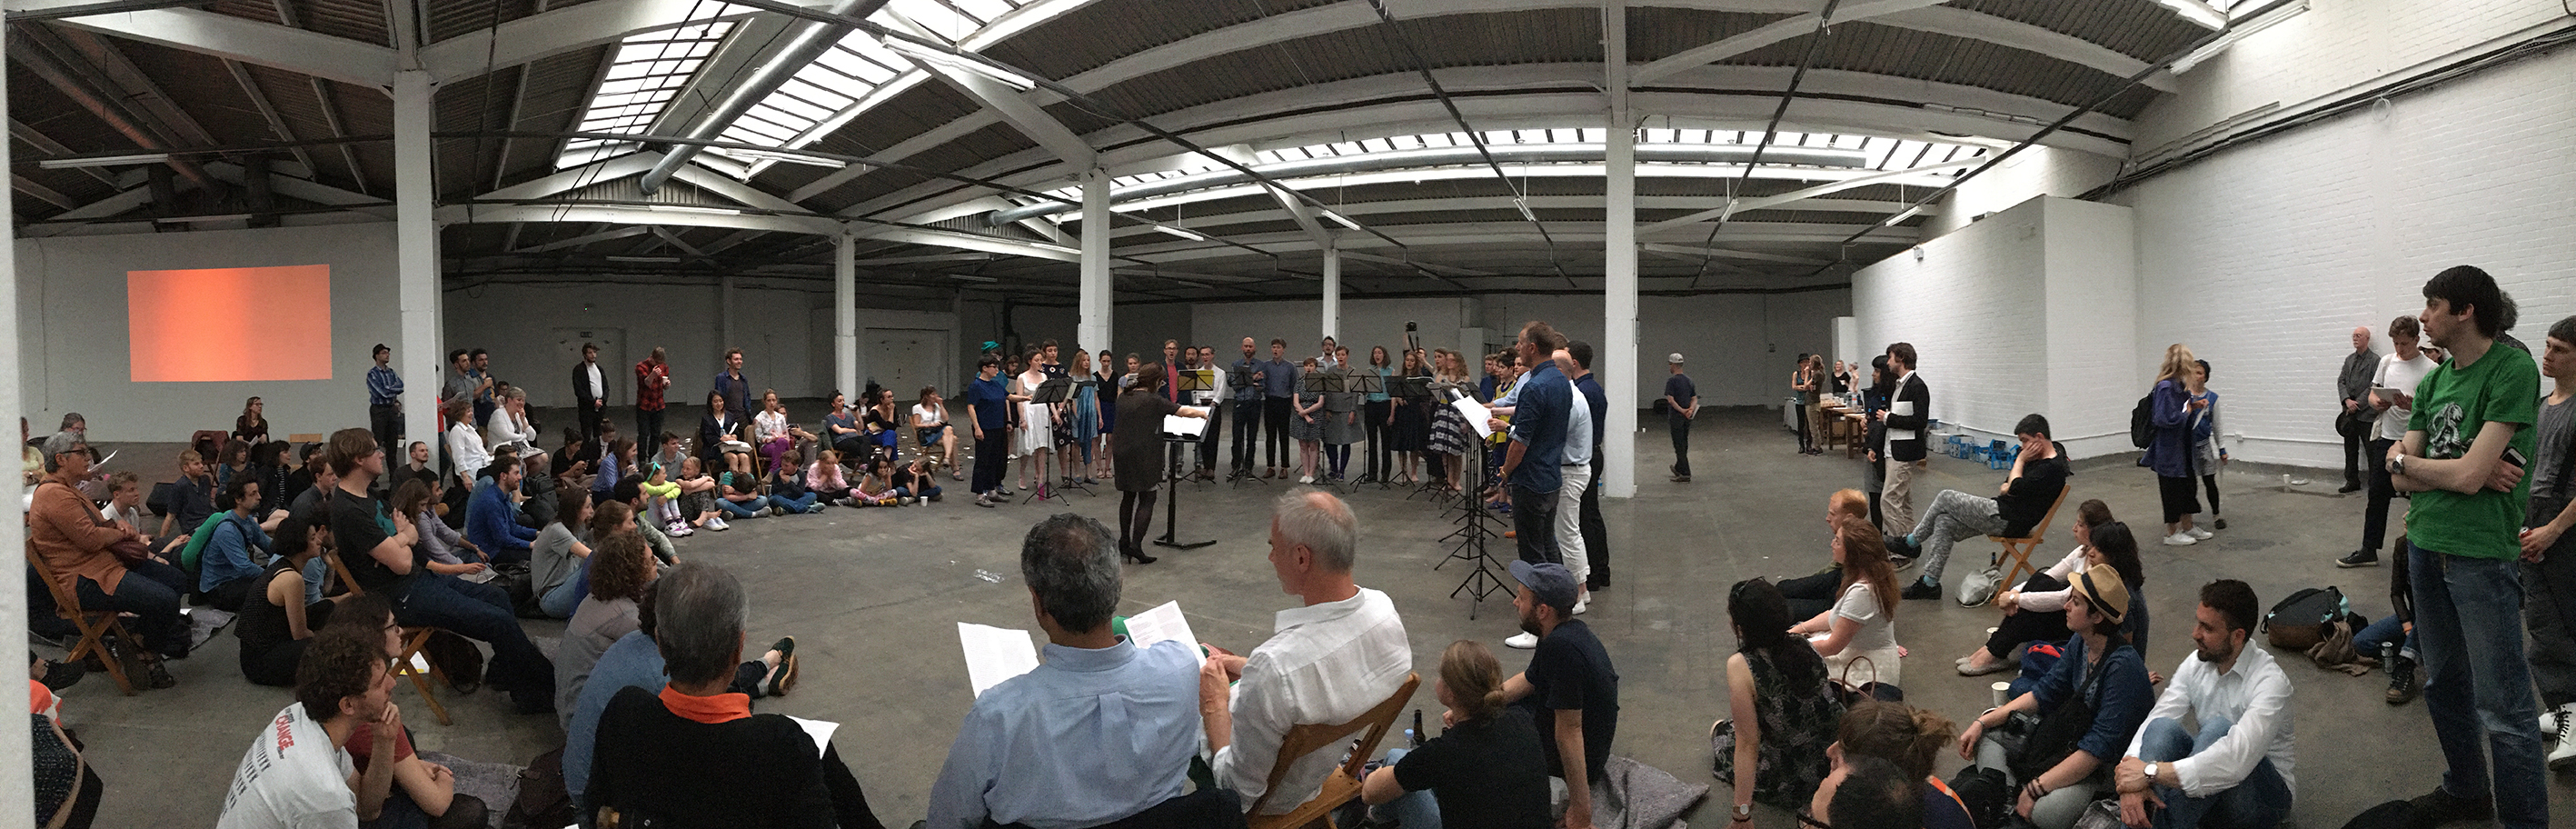 Musarc performing at the Old Truman Brewery on the summer solstice in 2016